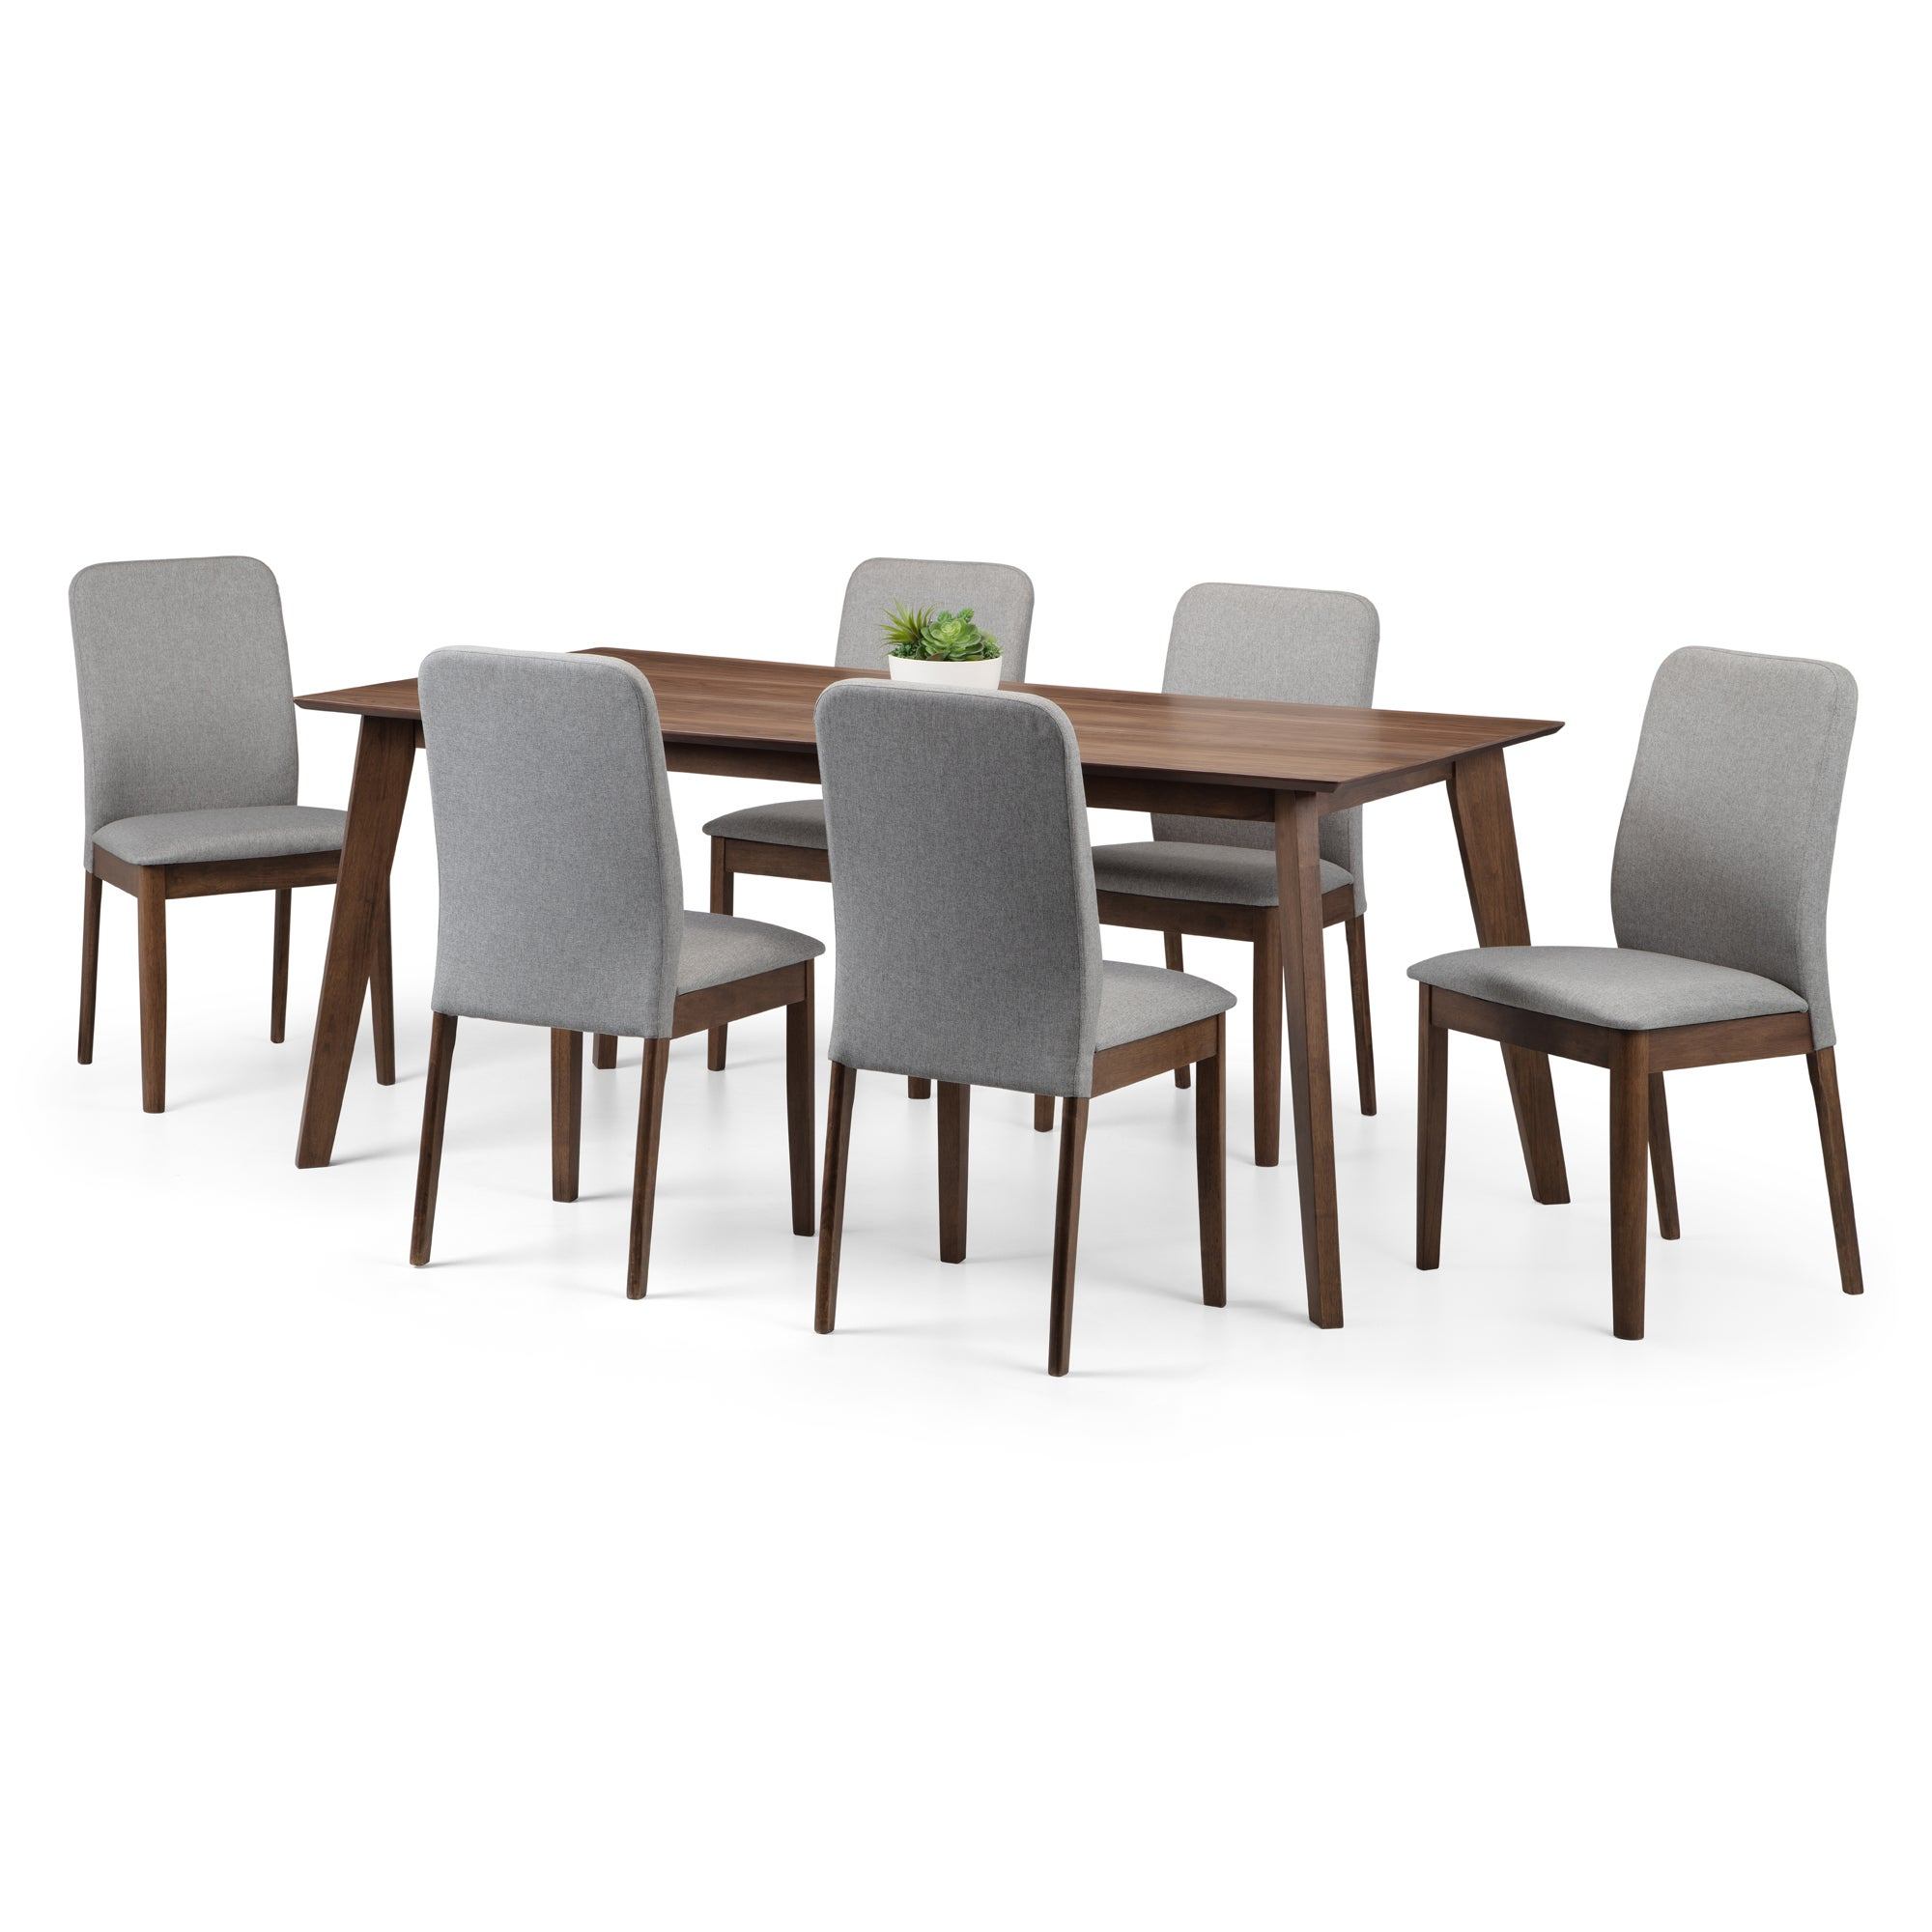 Berkely Dining Table with 6 Chairs Walnut